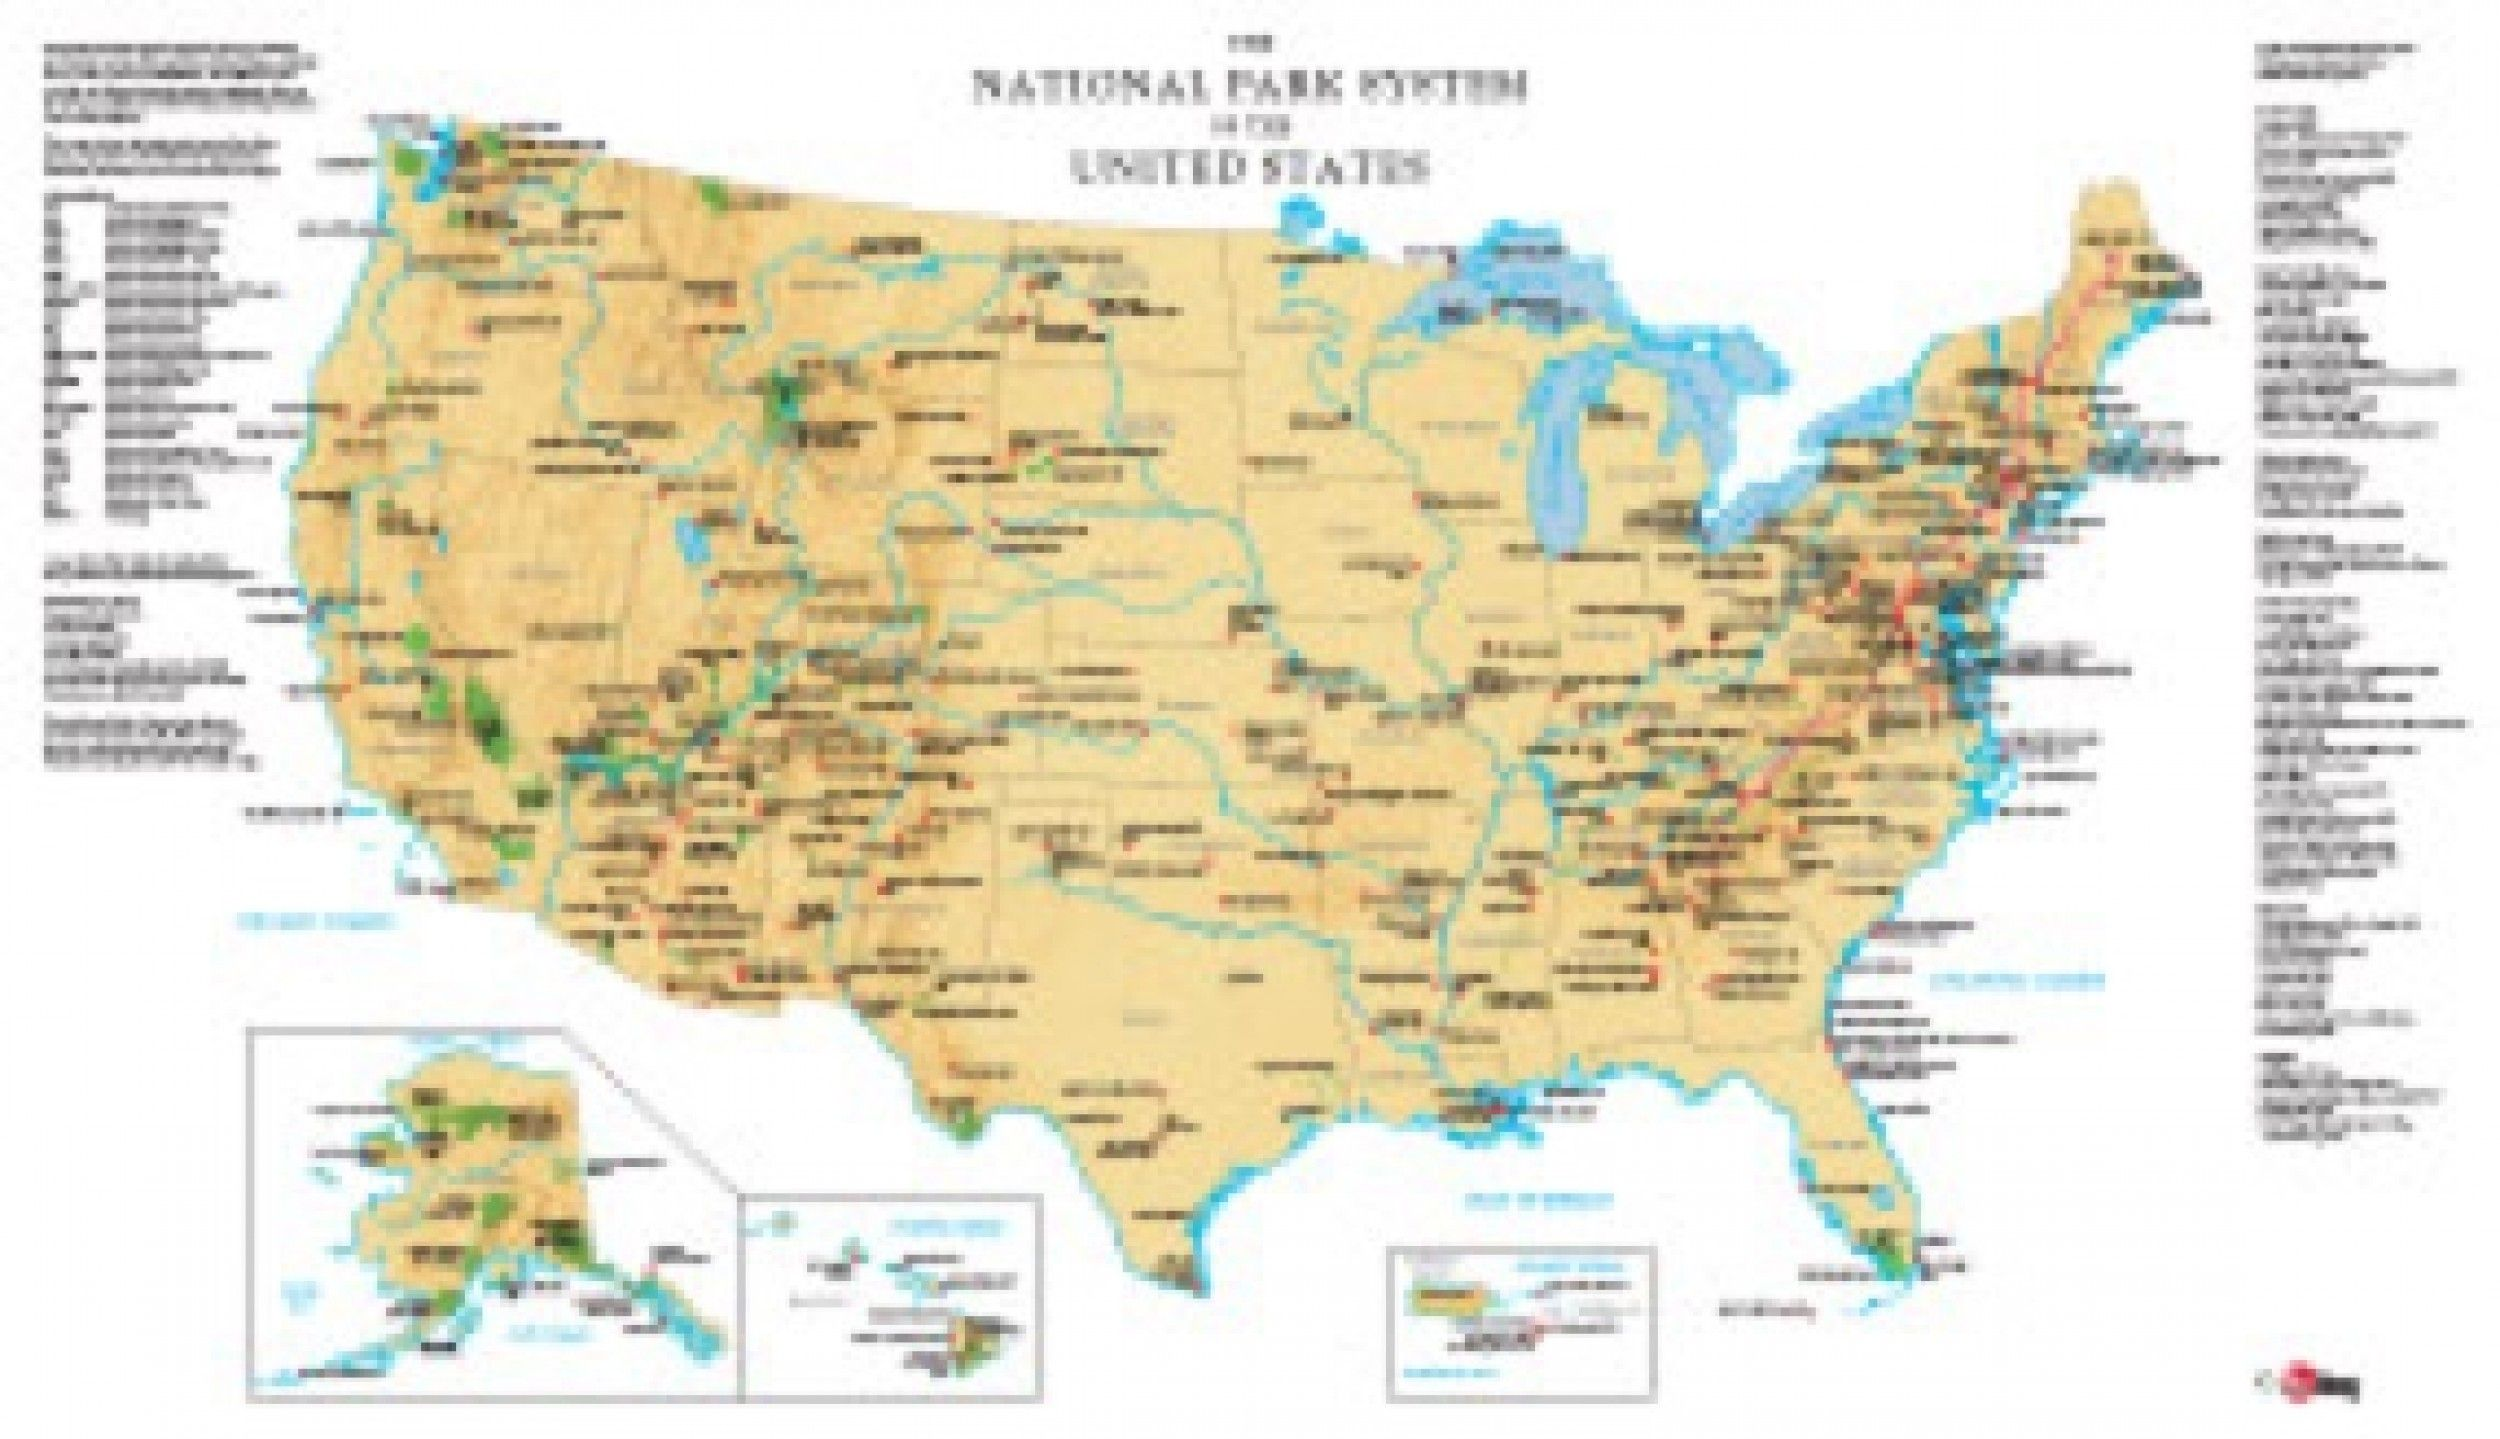 Pin by 云 汪 on USA national park | Us national parks map, National ...